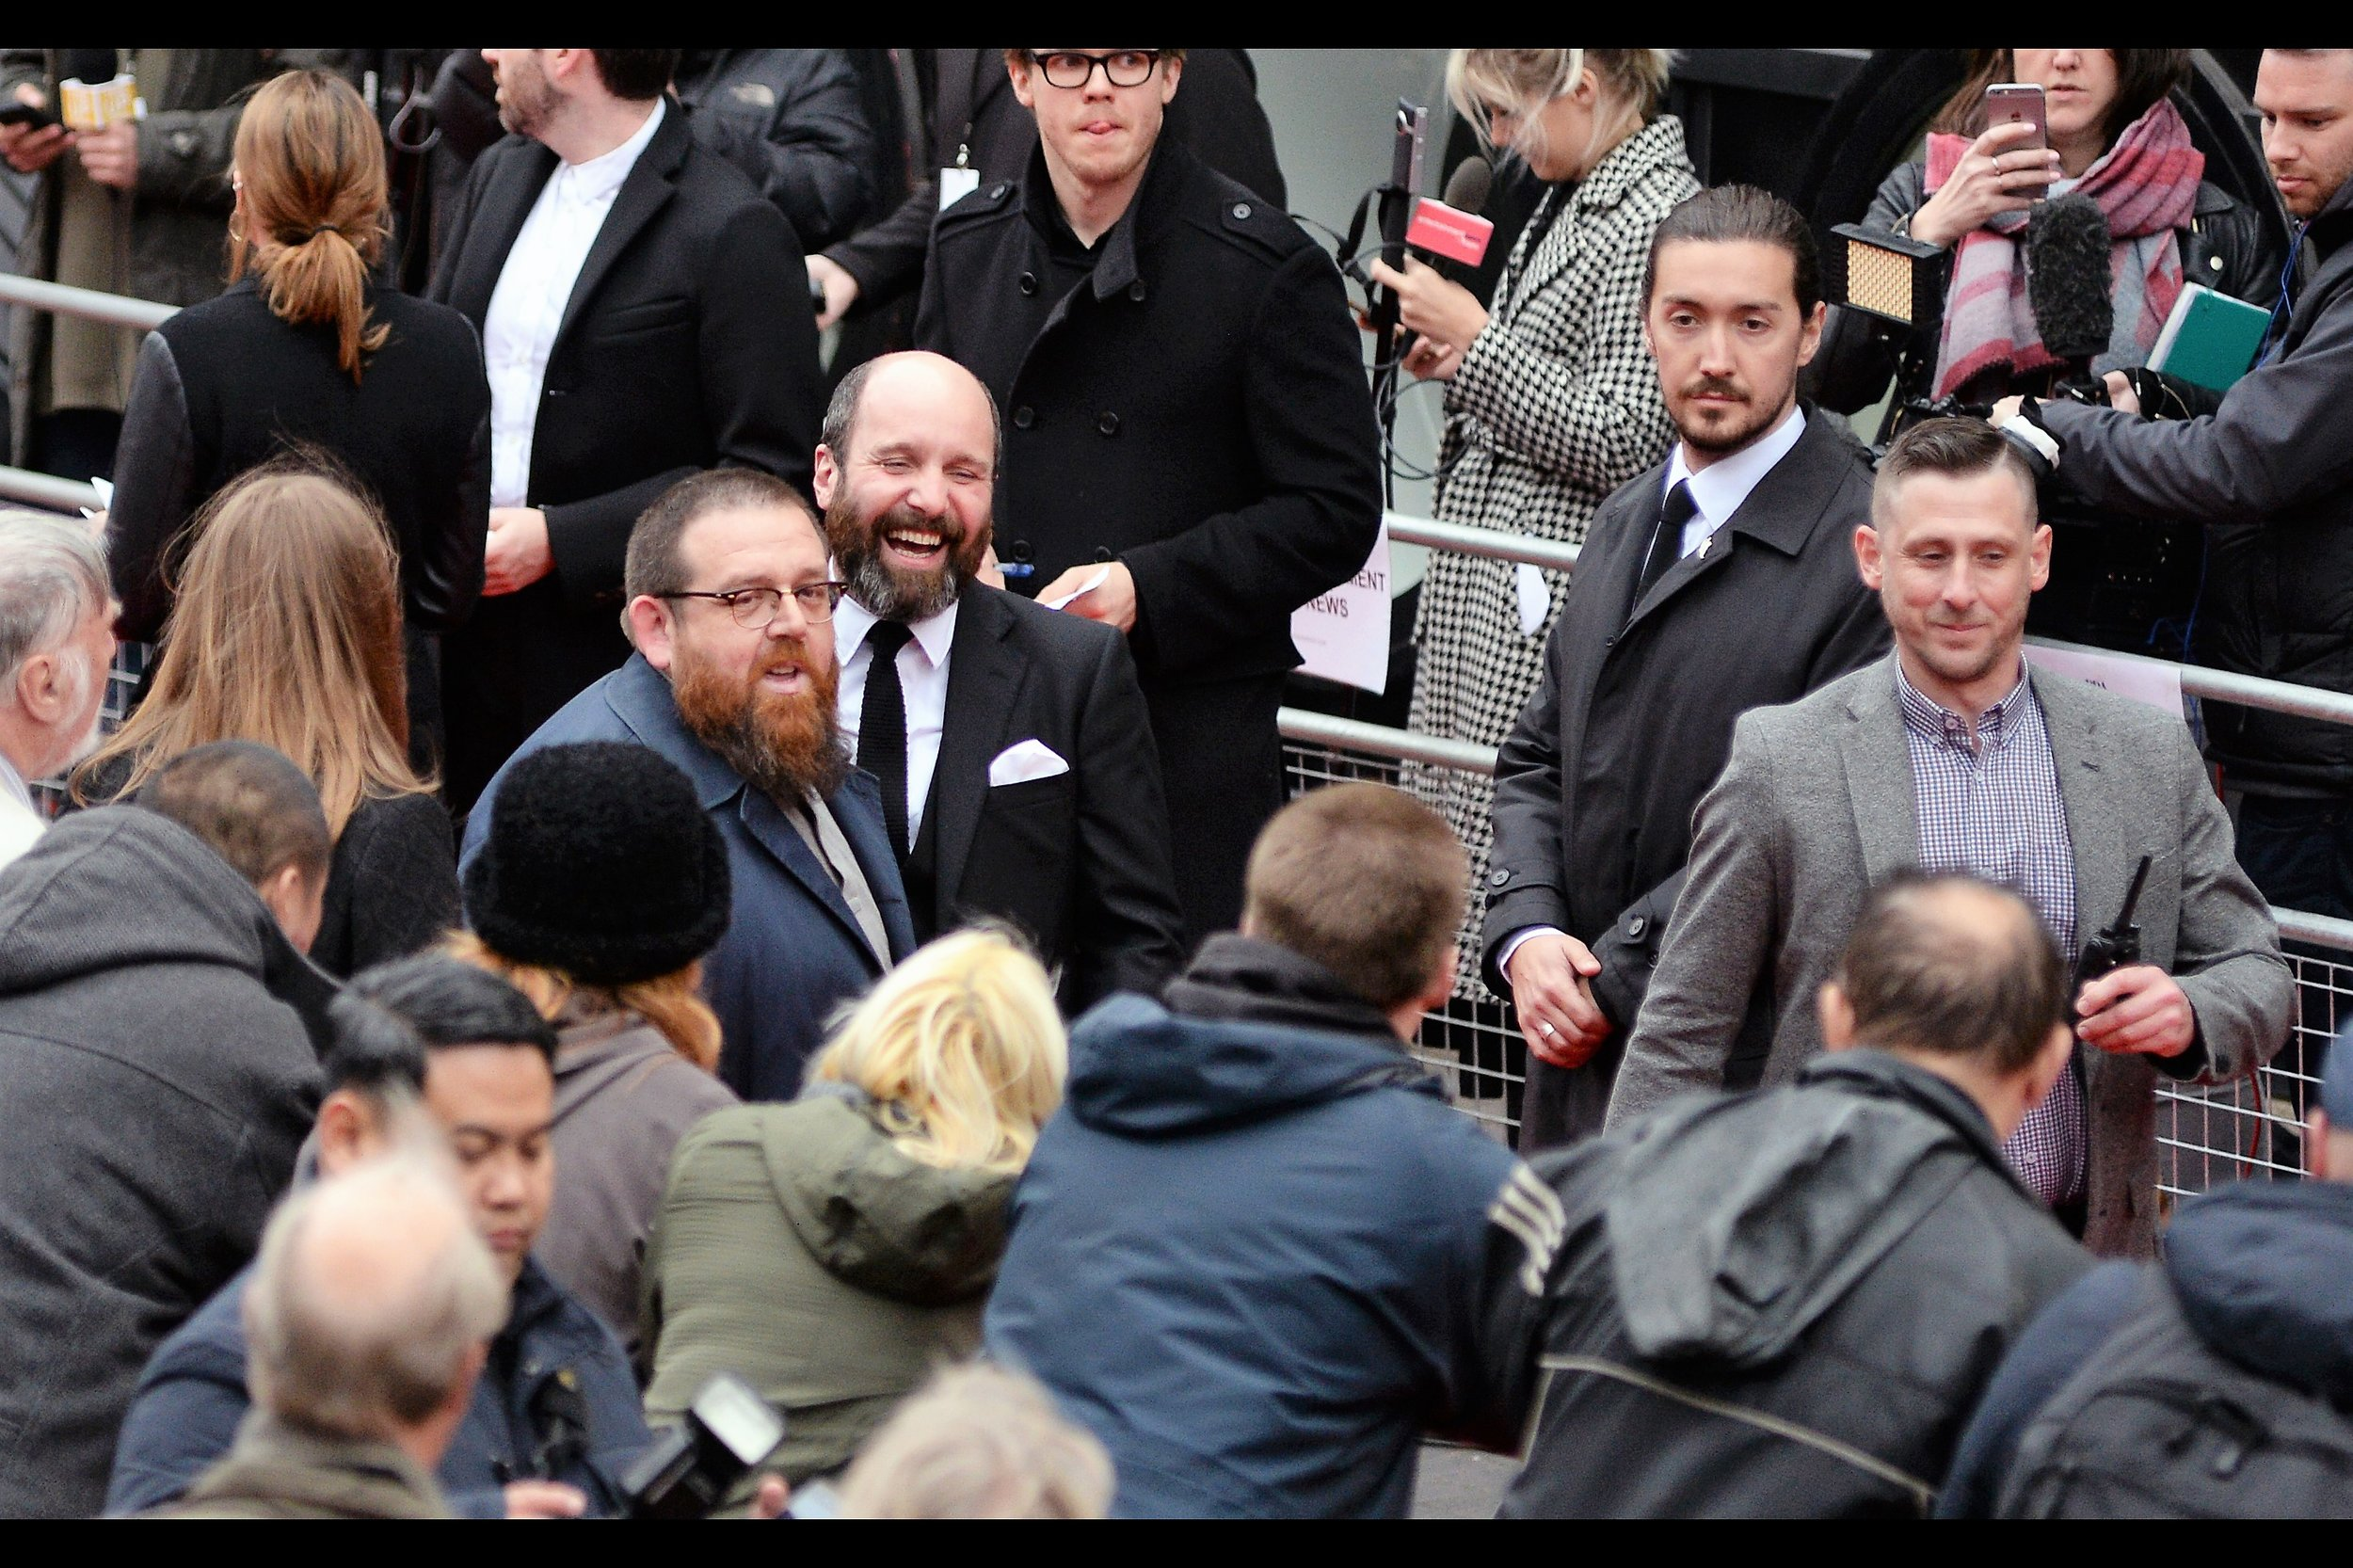 Random (?) attendee : actor Nick Frost. Also, random presence on random attendee : a red beard on actor Nick Frost.